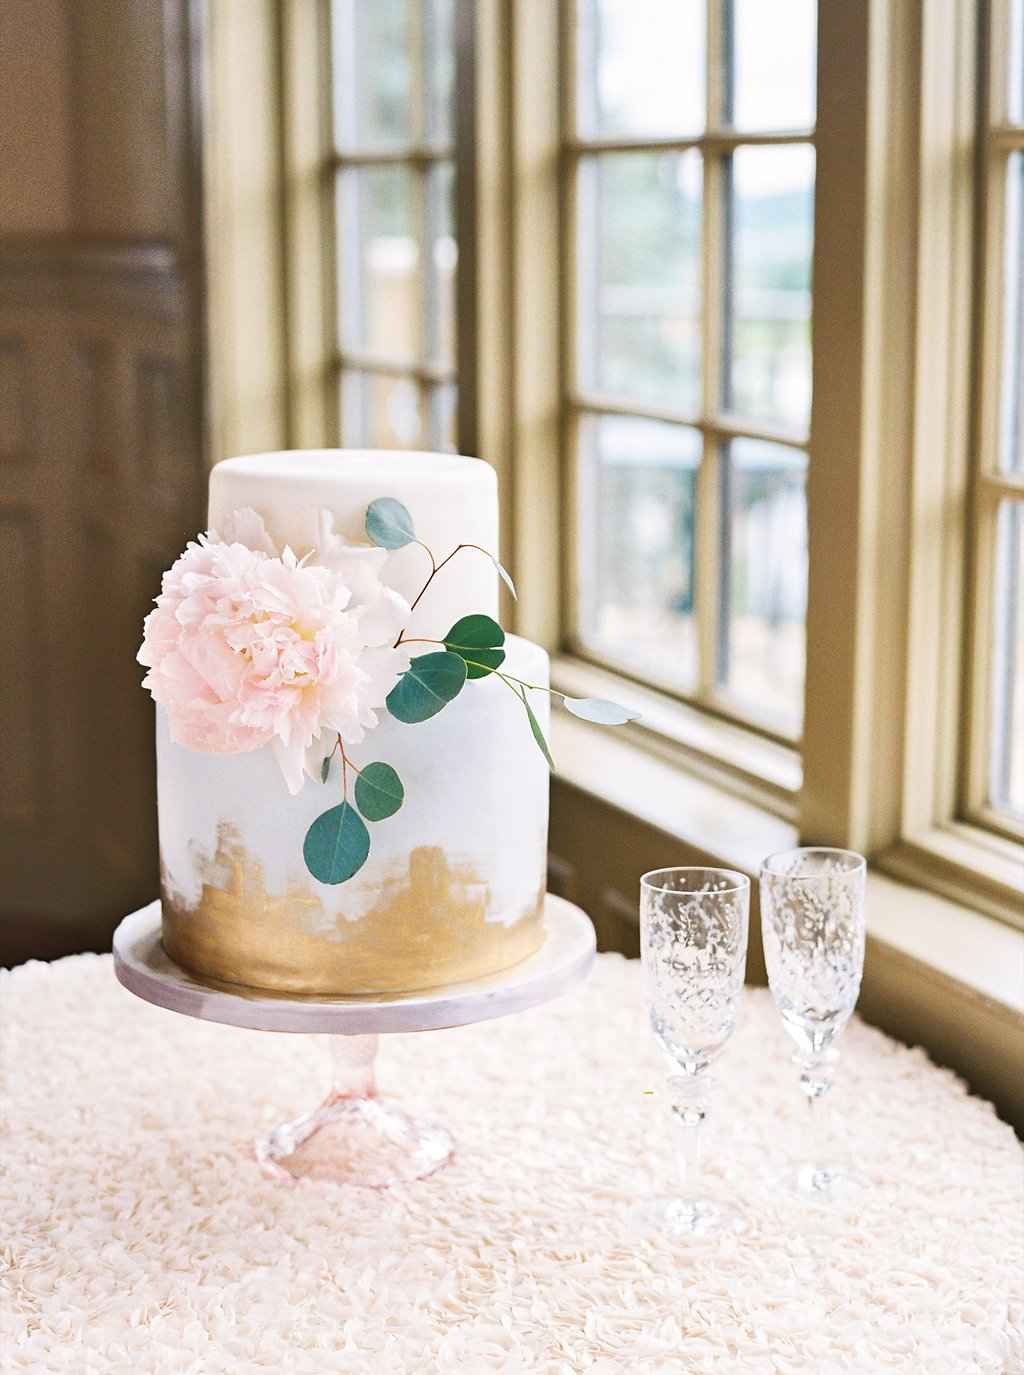 Dusty Blue and White Two Tiered Wedding Cake with Brushed Gold Brushstrokes | Simply Jessica Marie's Southern Wedding at Gettysvue | Photo by Perry Vaile Photography